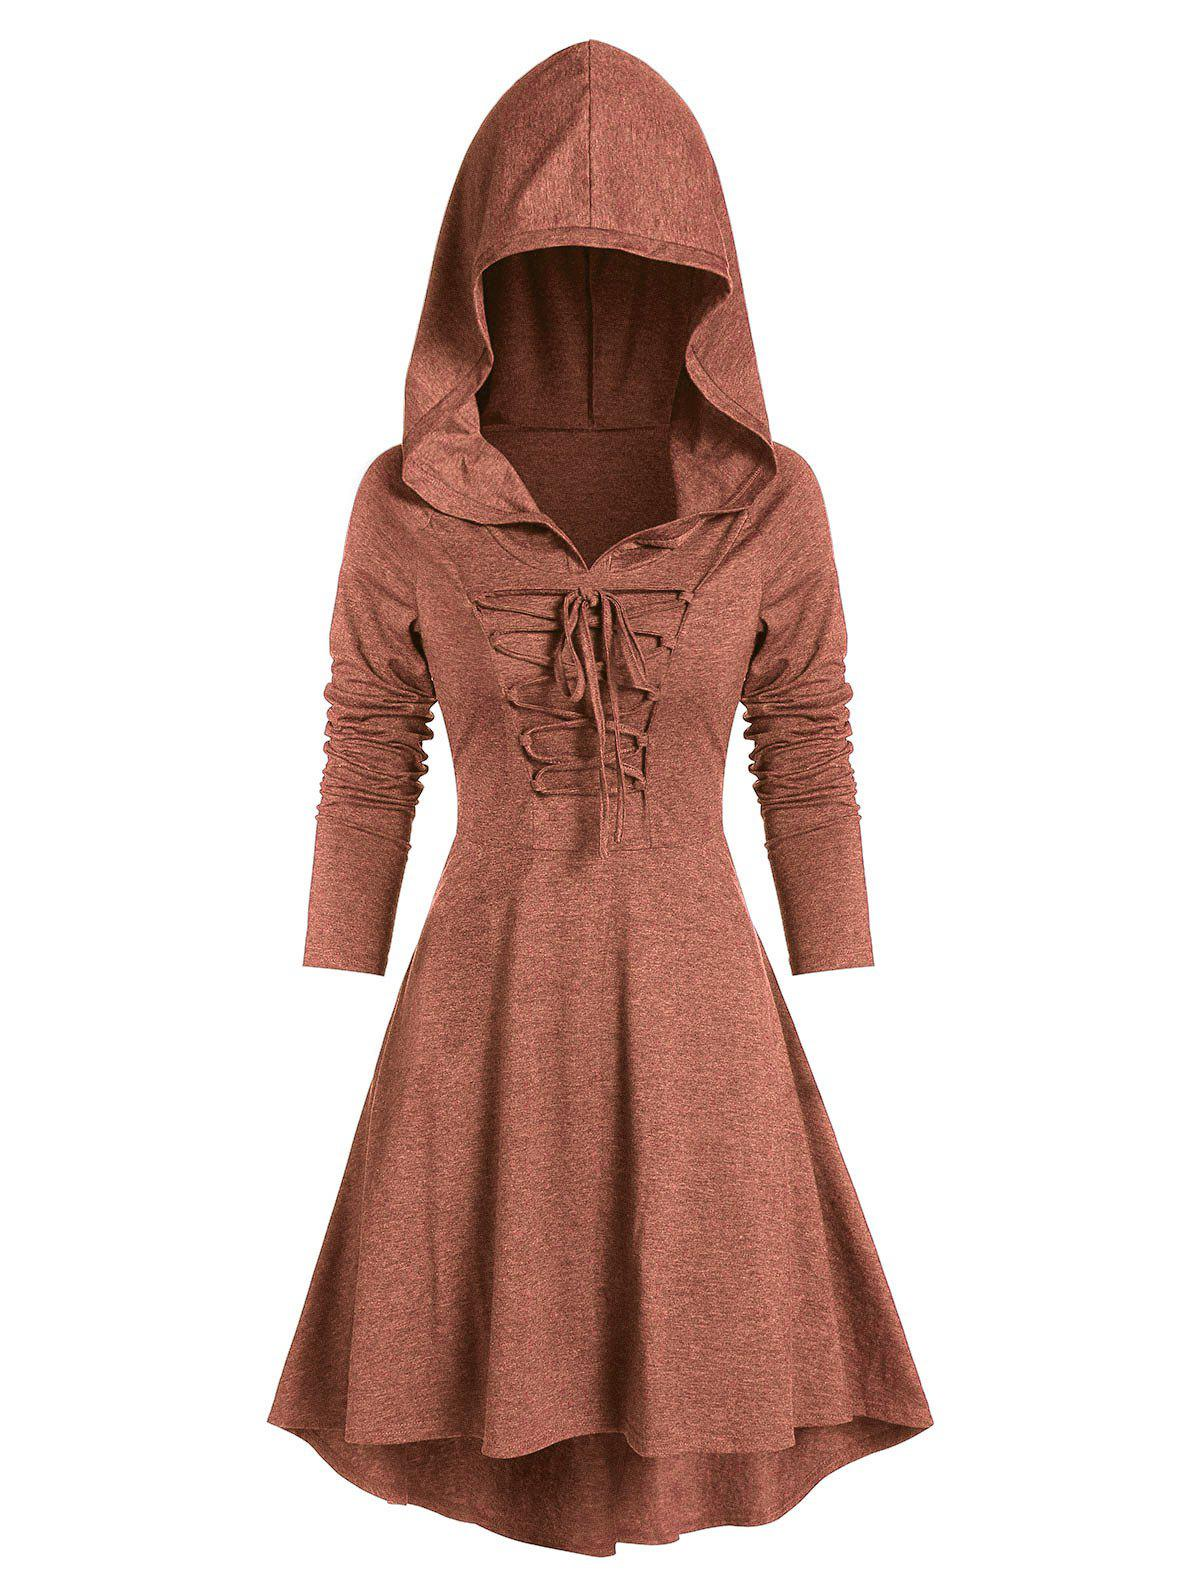 Hooded Lace-up Heathered High Low Gothic Dress - TIGER ORANGE S